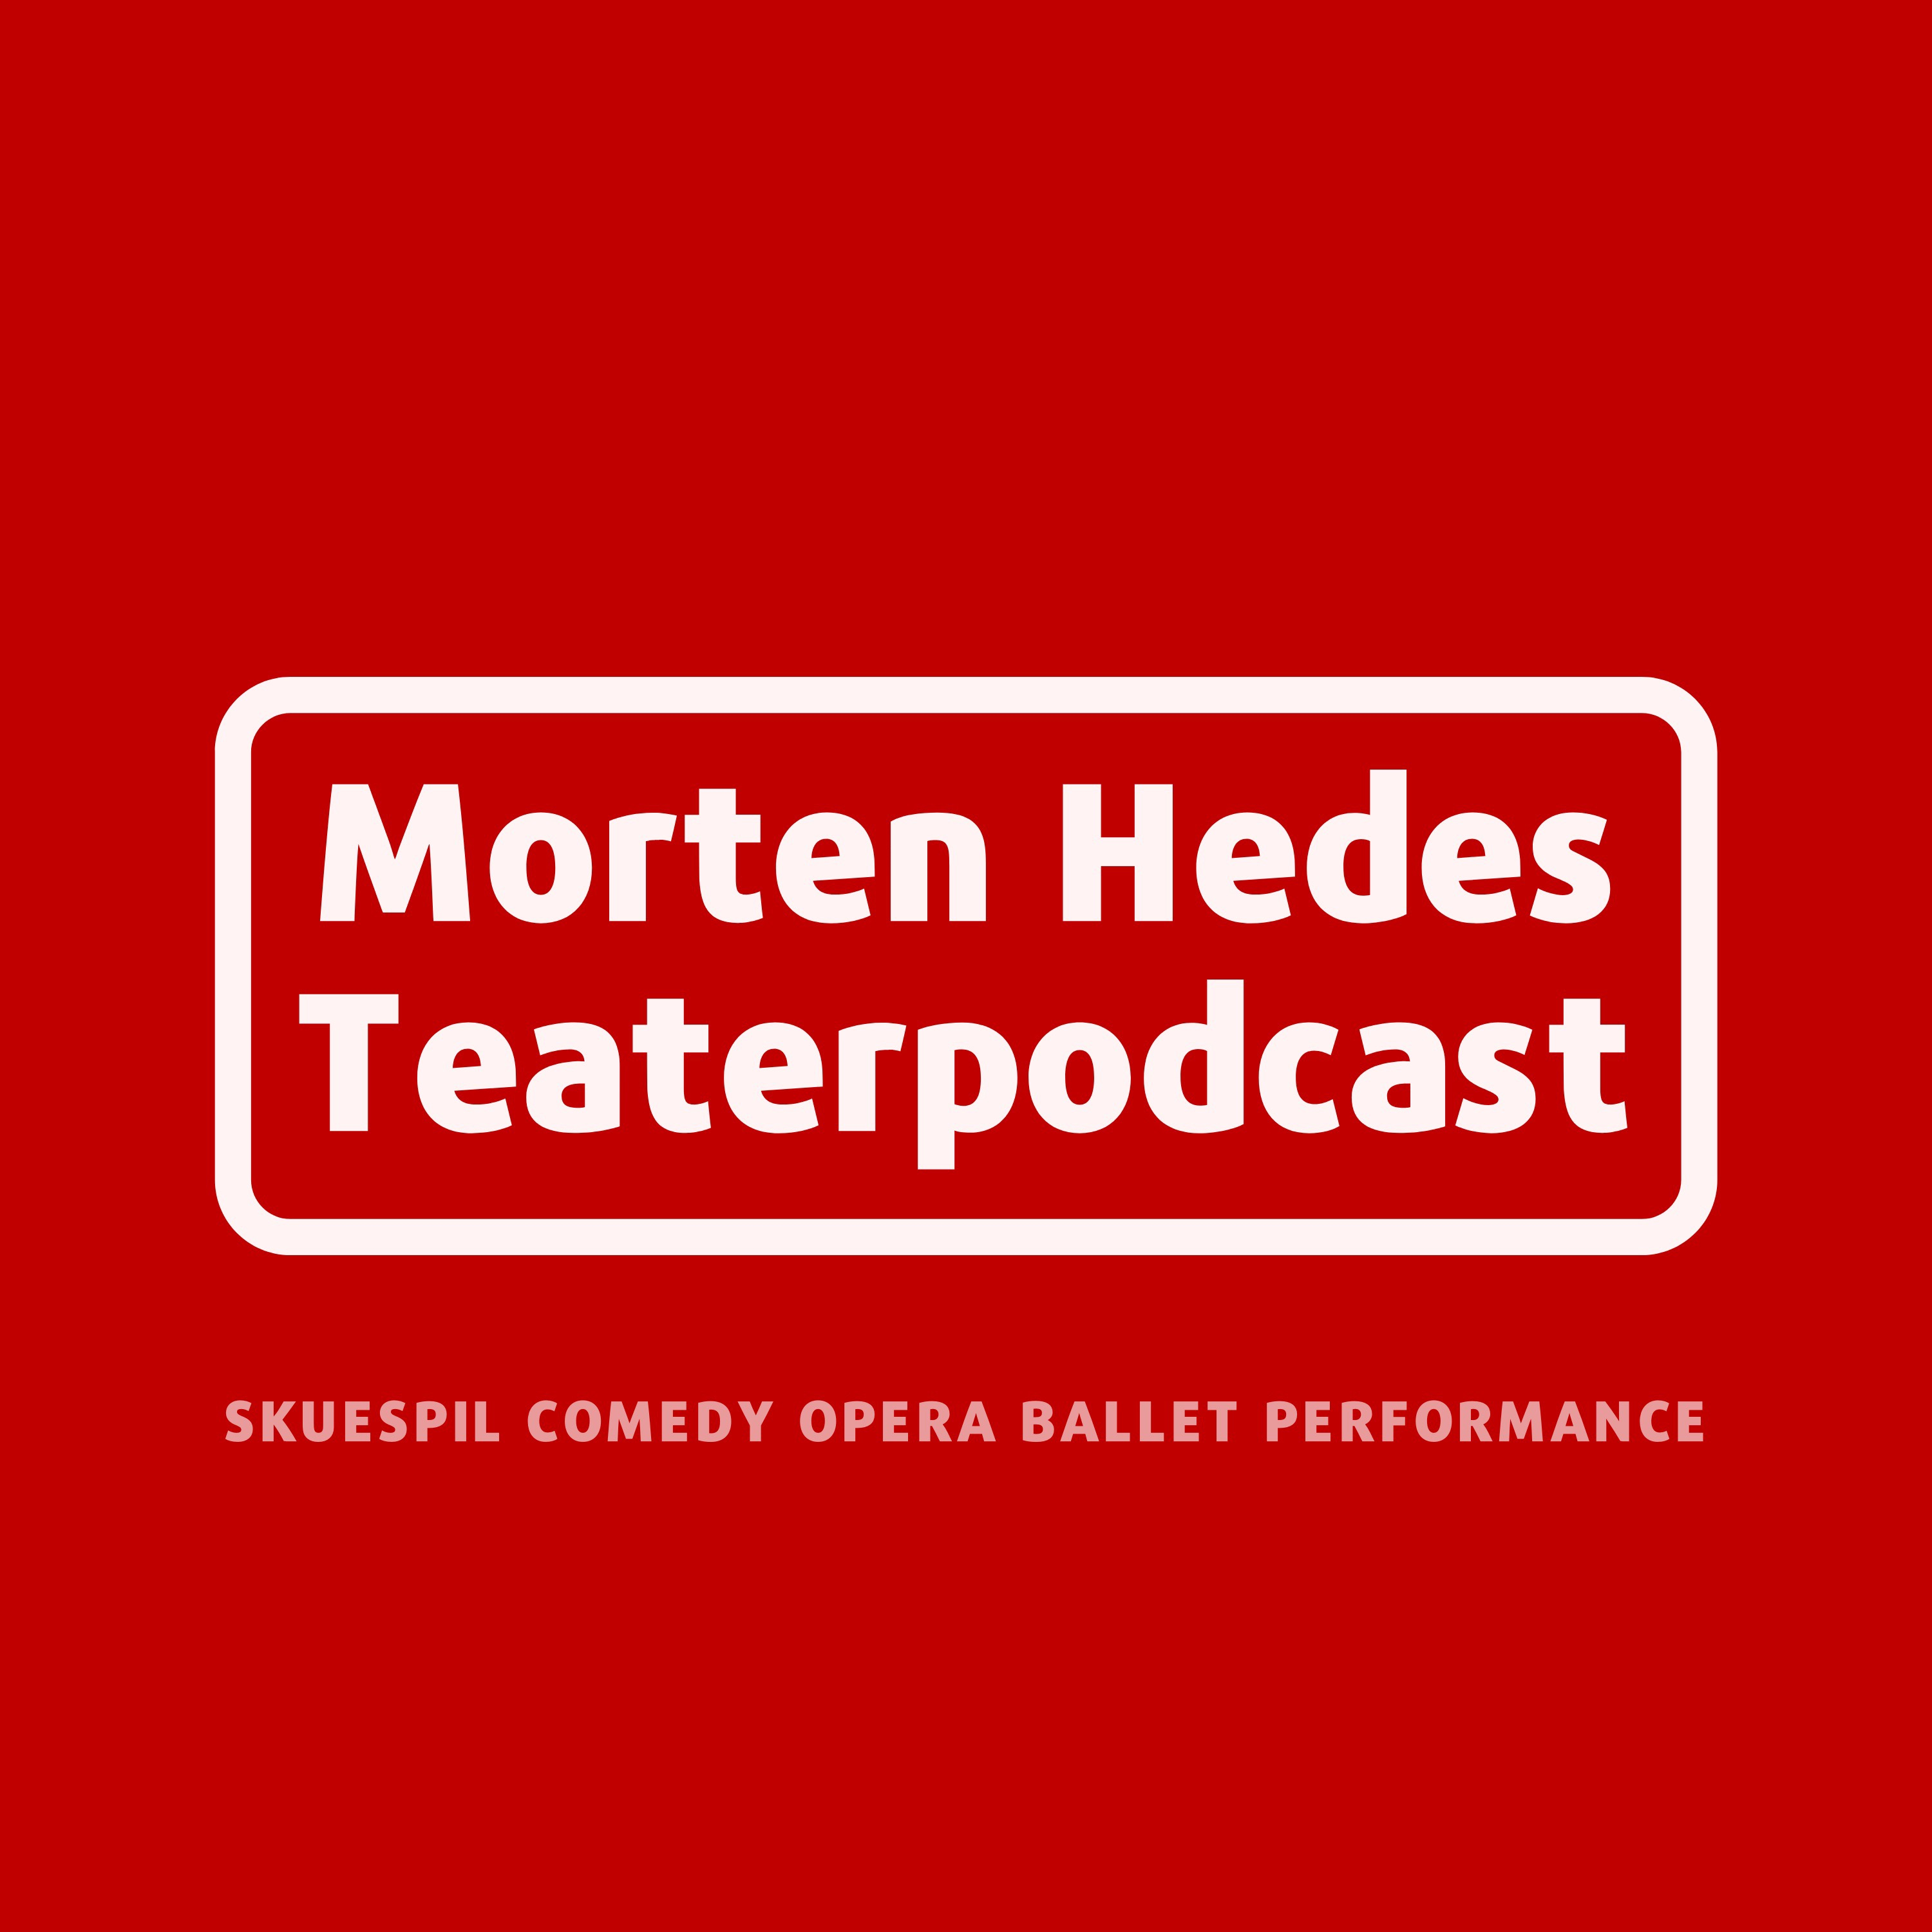 Morten Hedes Teaterpodcast